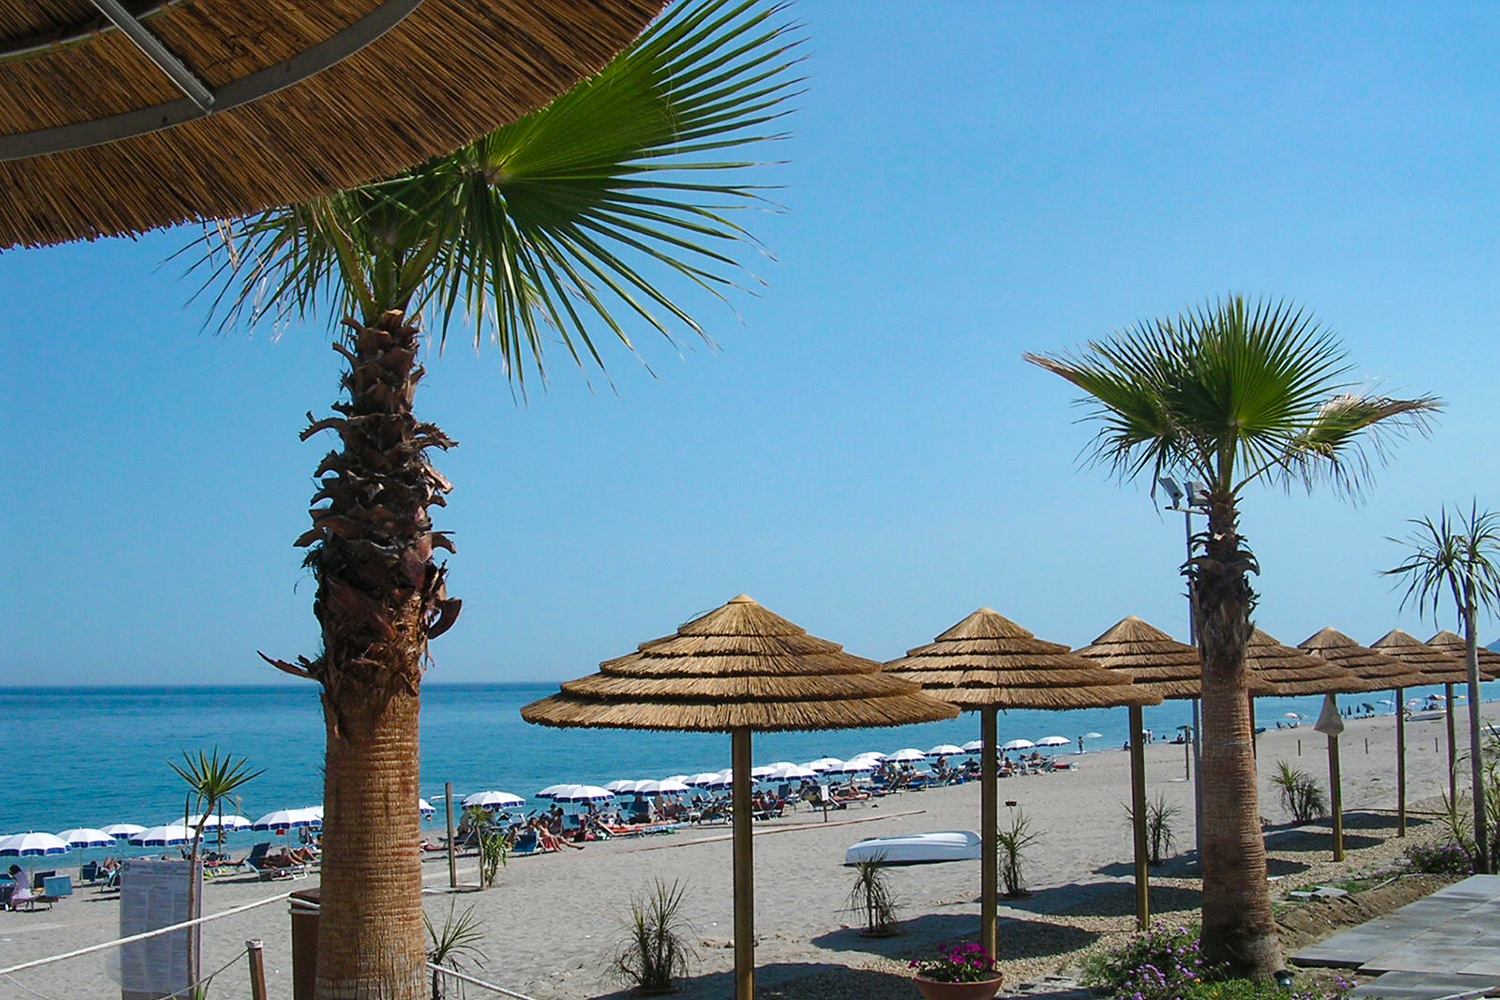 beach-crystal-sea-four-star-hotel-taormina-sicily-marina-agro